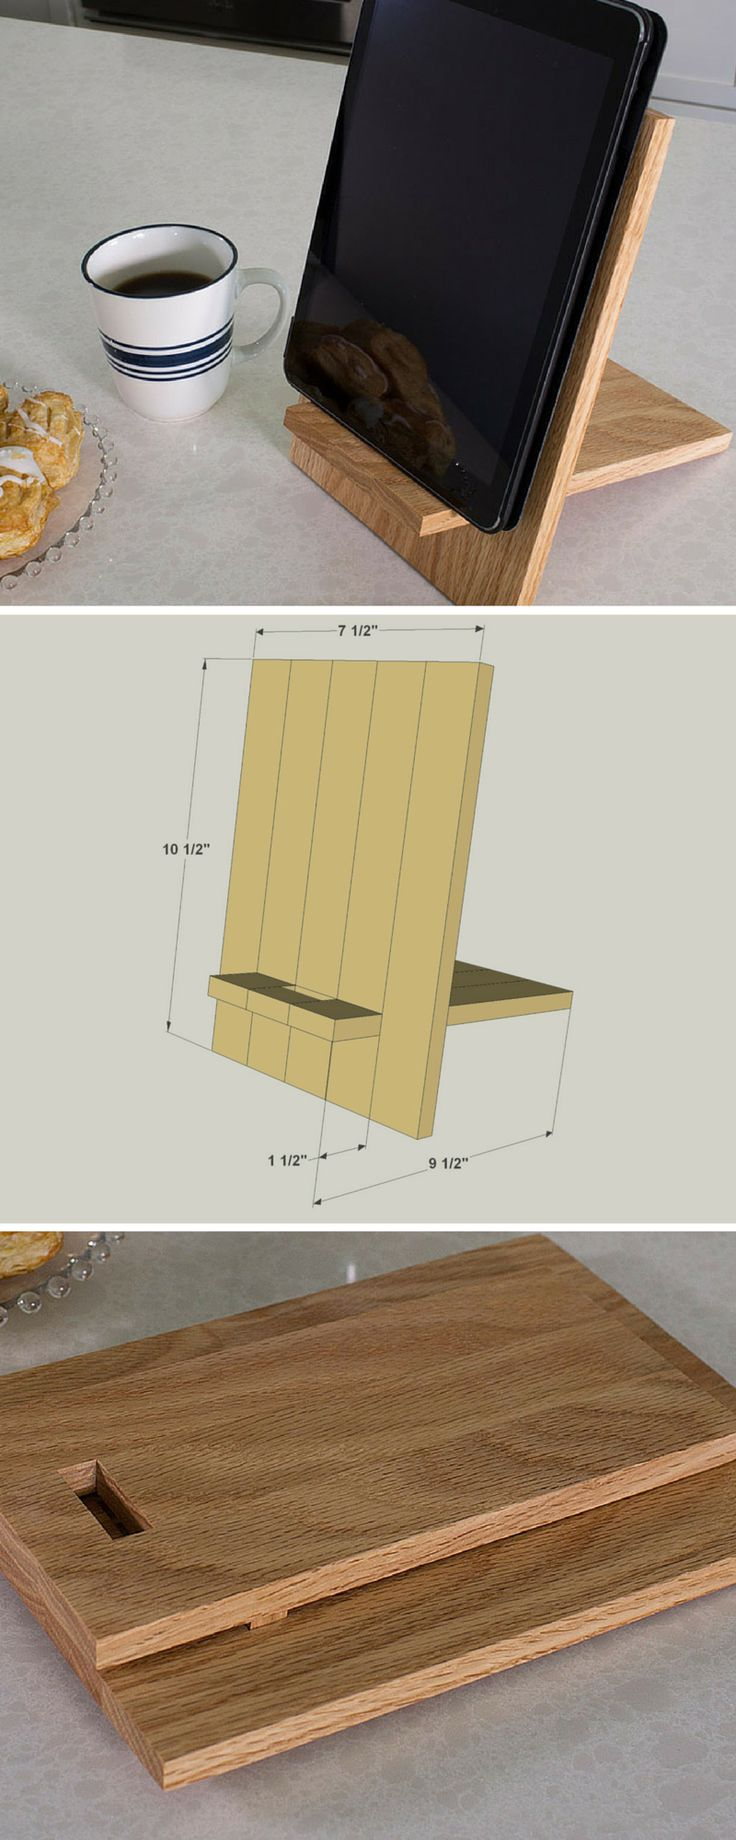 This handy stand holds your tablet so you don't have to, and puts it at a perfect angle for use. You can even store the stand flat by removing the leg and locking it into the face. Get the free DIY plans at buildsomething.com